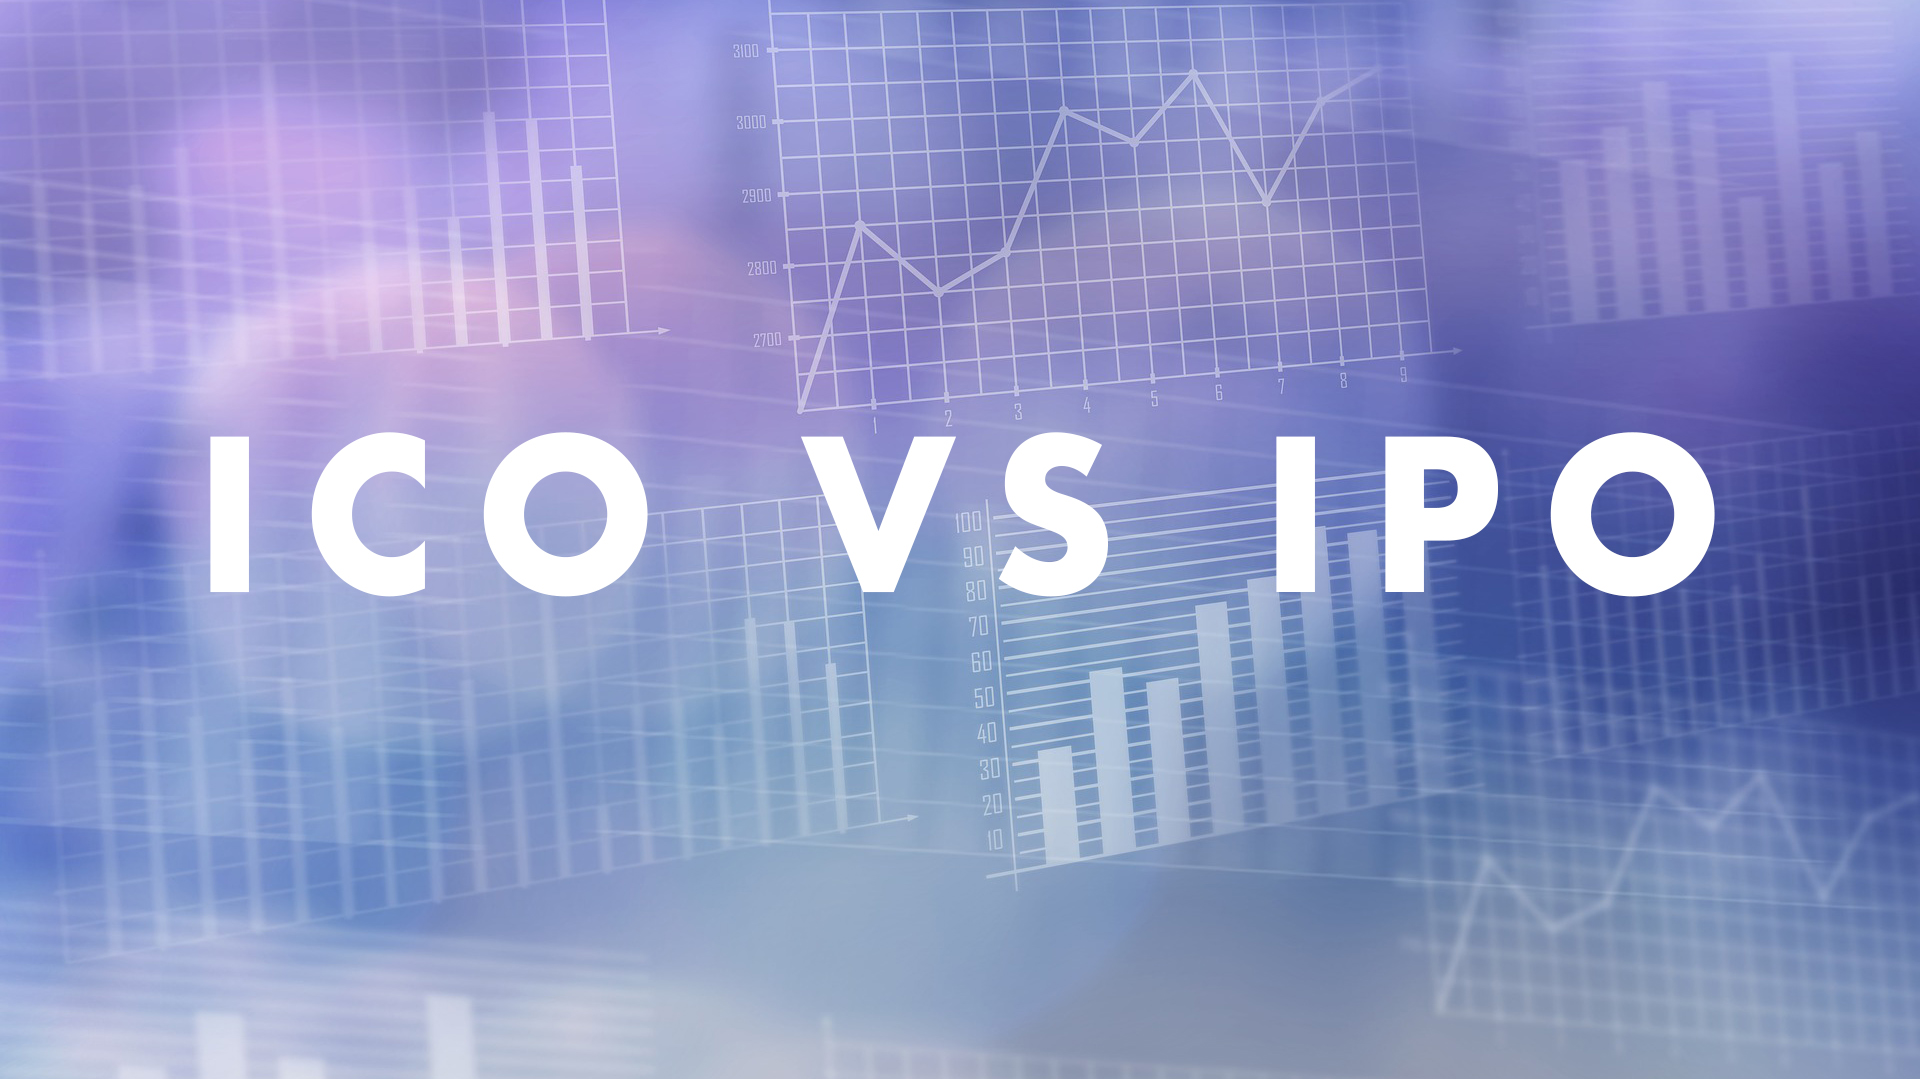 ICO (Initial Coin Offering) vs IPO (Initial Public Offering)